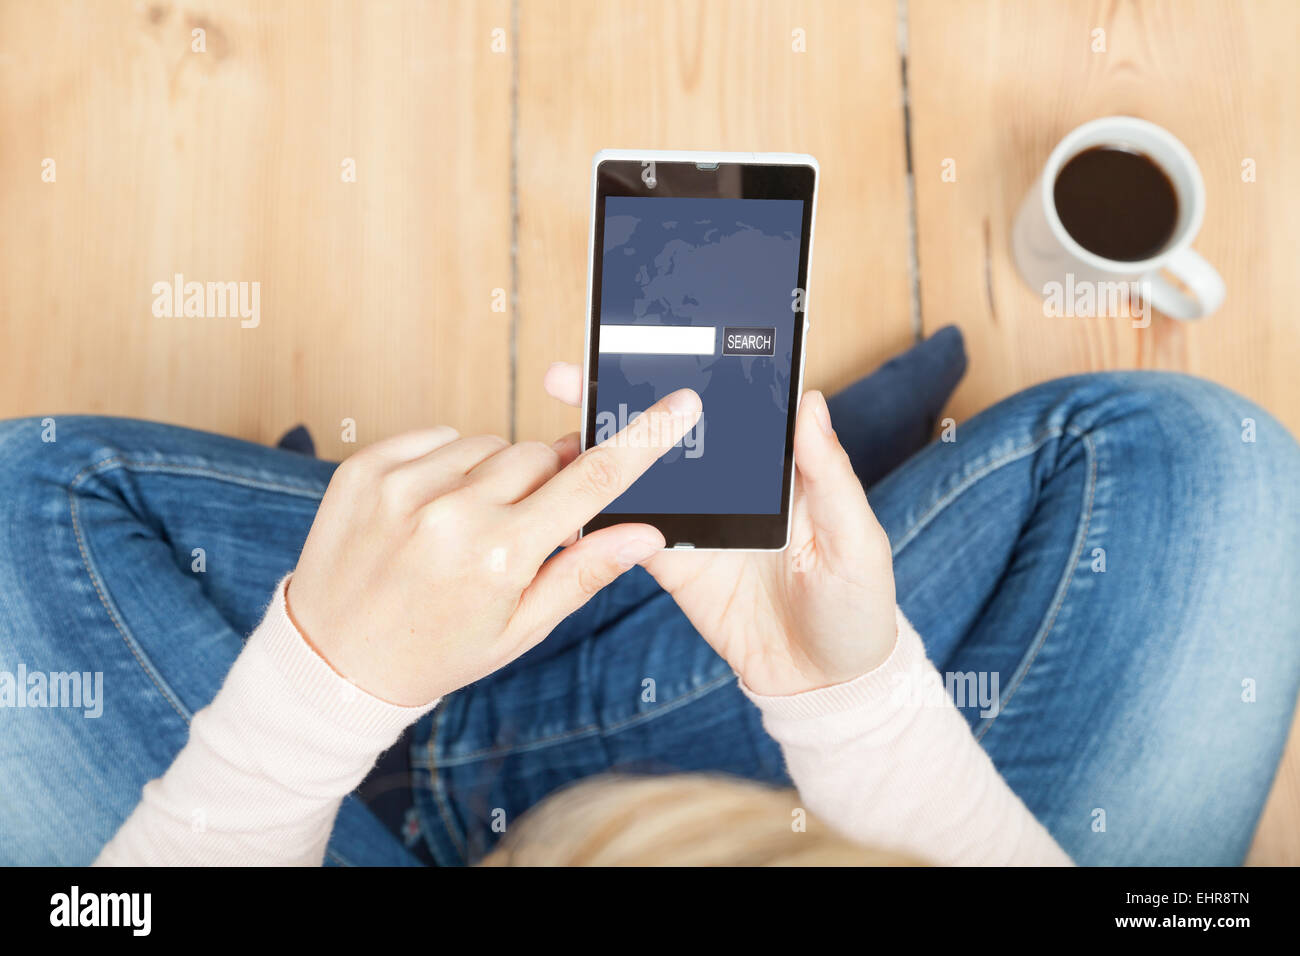 woman uses search engine on smartphone - Stock Image